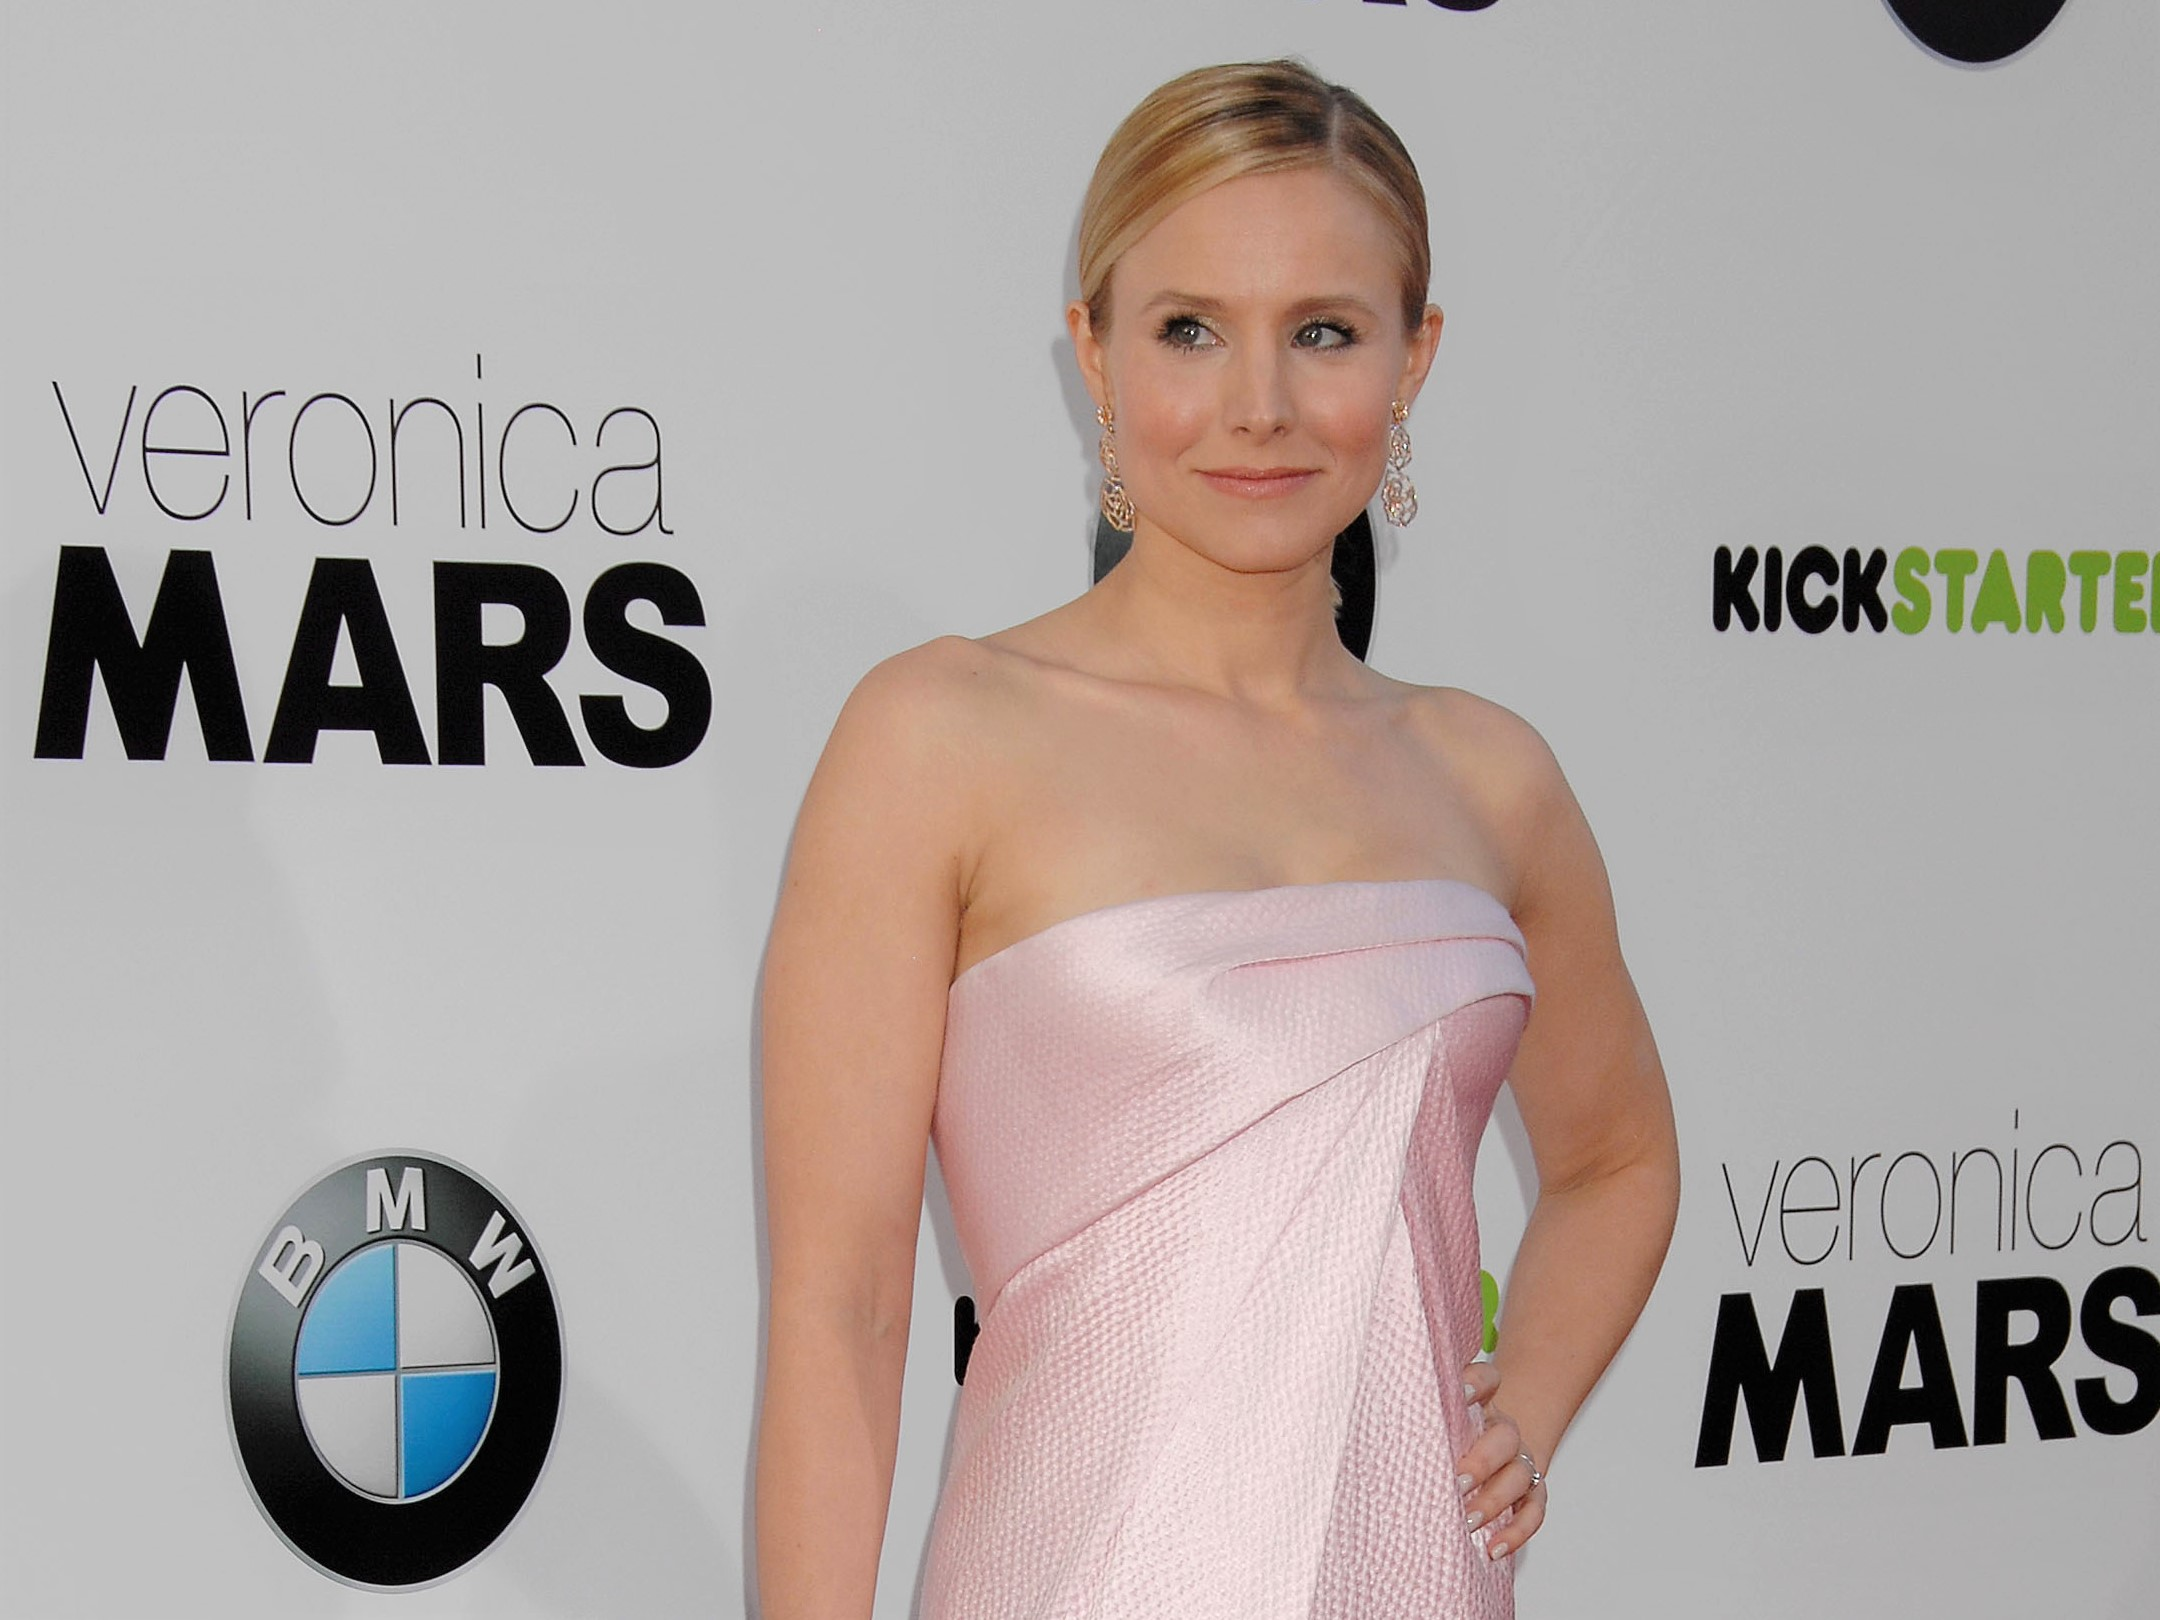 Veronica Mars Reboot Officially Happening: New Details Released